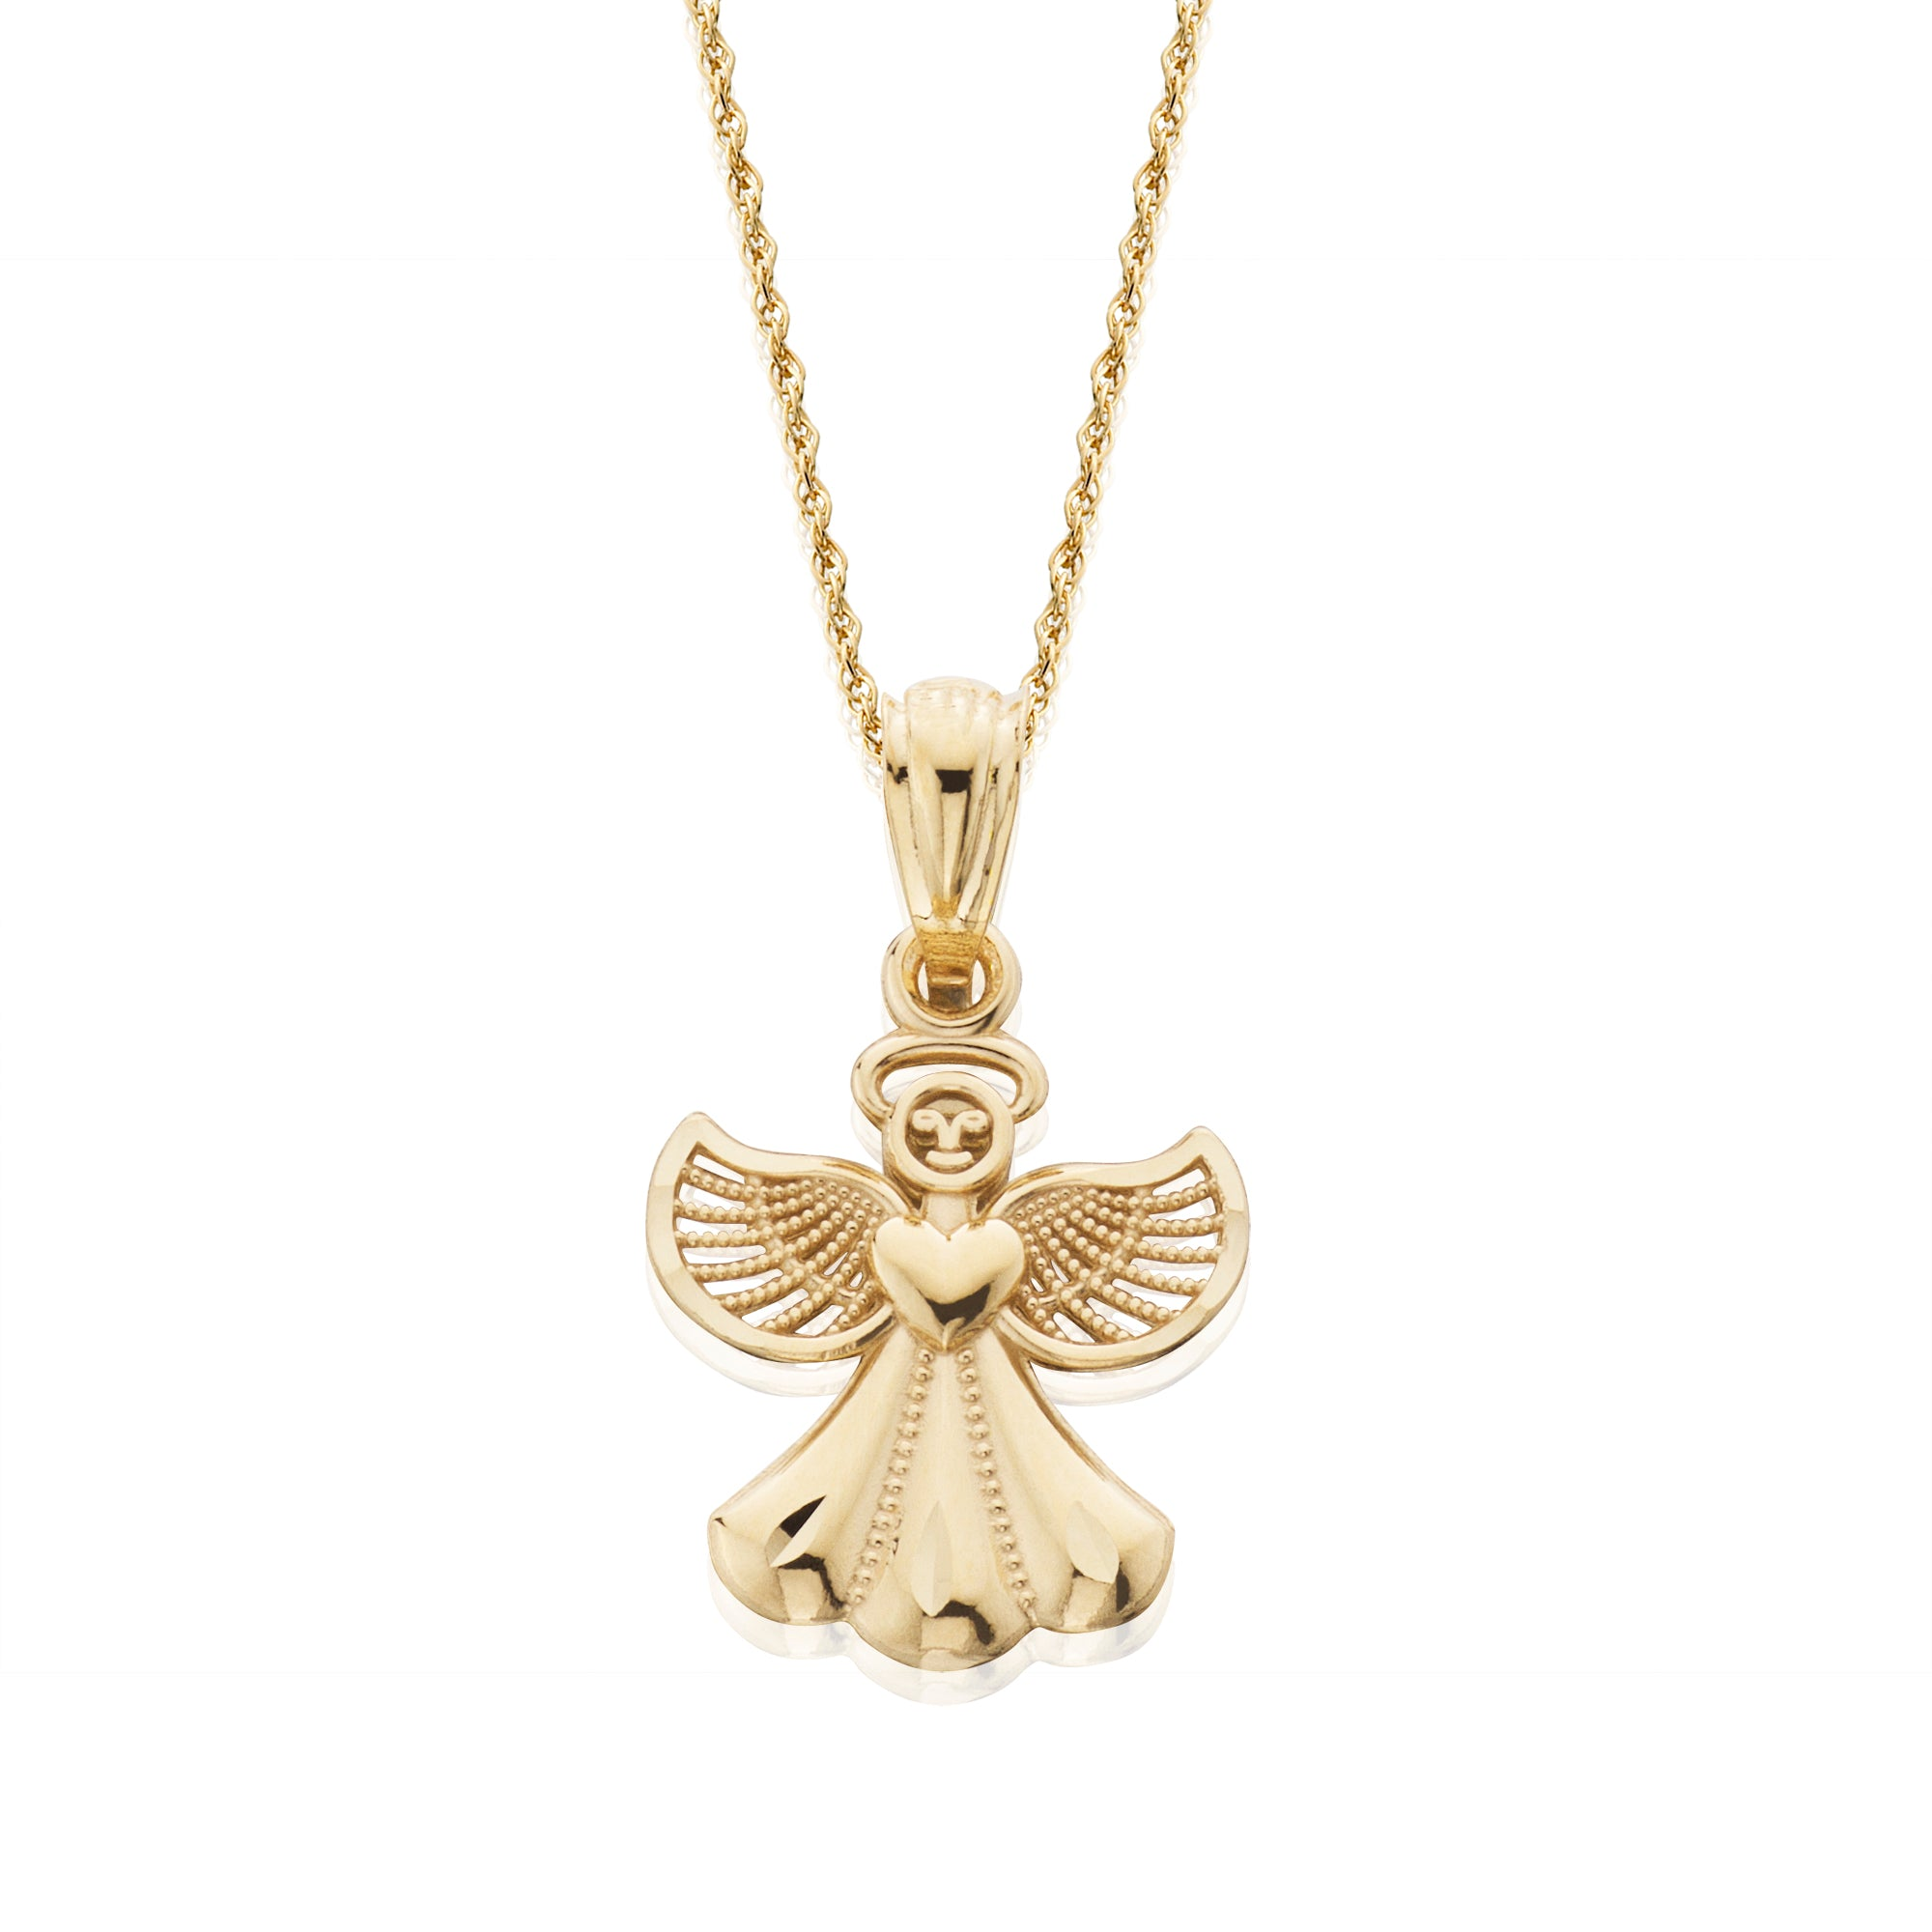 brass unadjustednonraw pendant crystal w angel me accessorize necklace products thumb